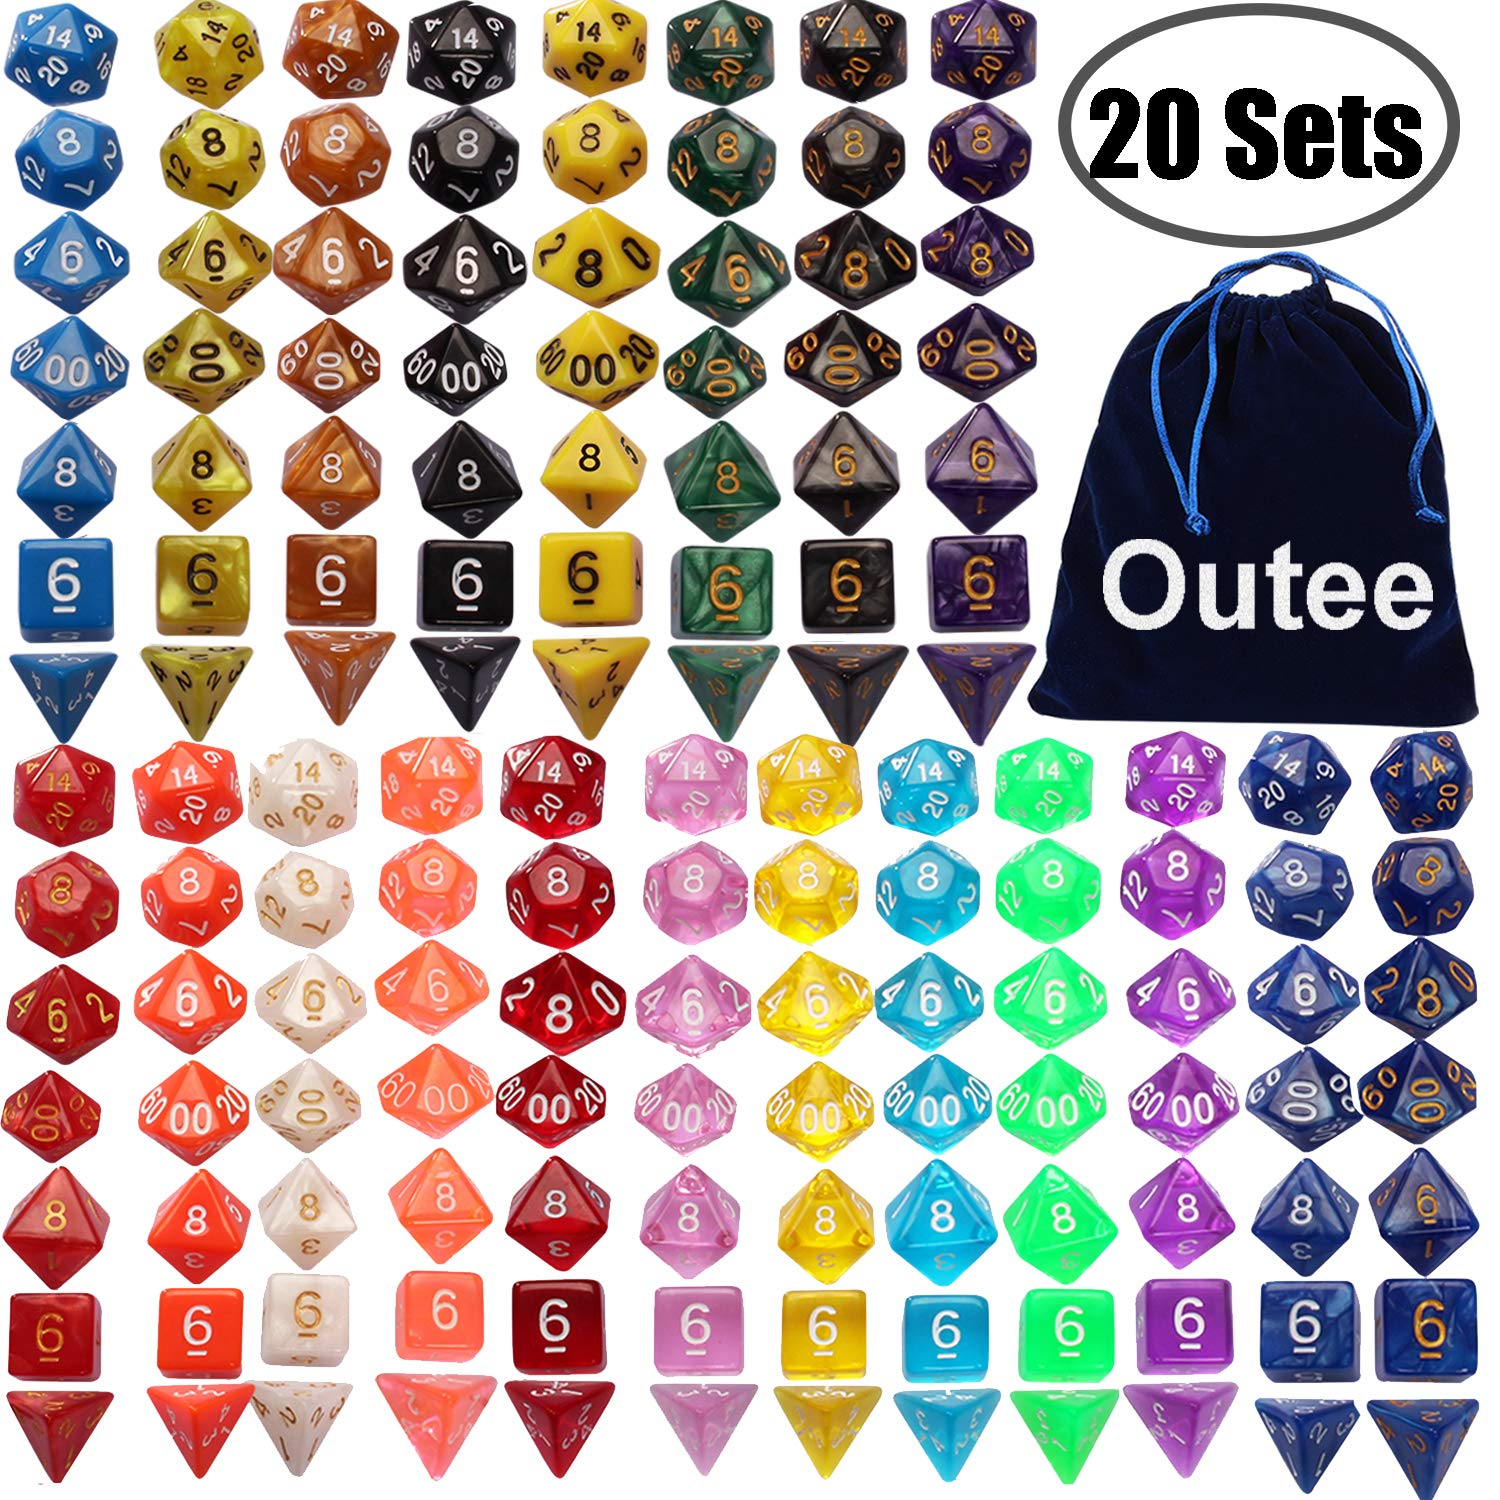 Outee 140 Pcs Polyhedral Dice Set DND Dice 20 Color Complete Dice and Dice Sets for MTG RPG Dice Game with 1 Big Pouch by Outee